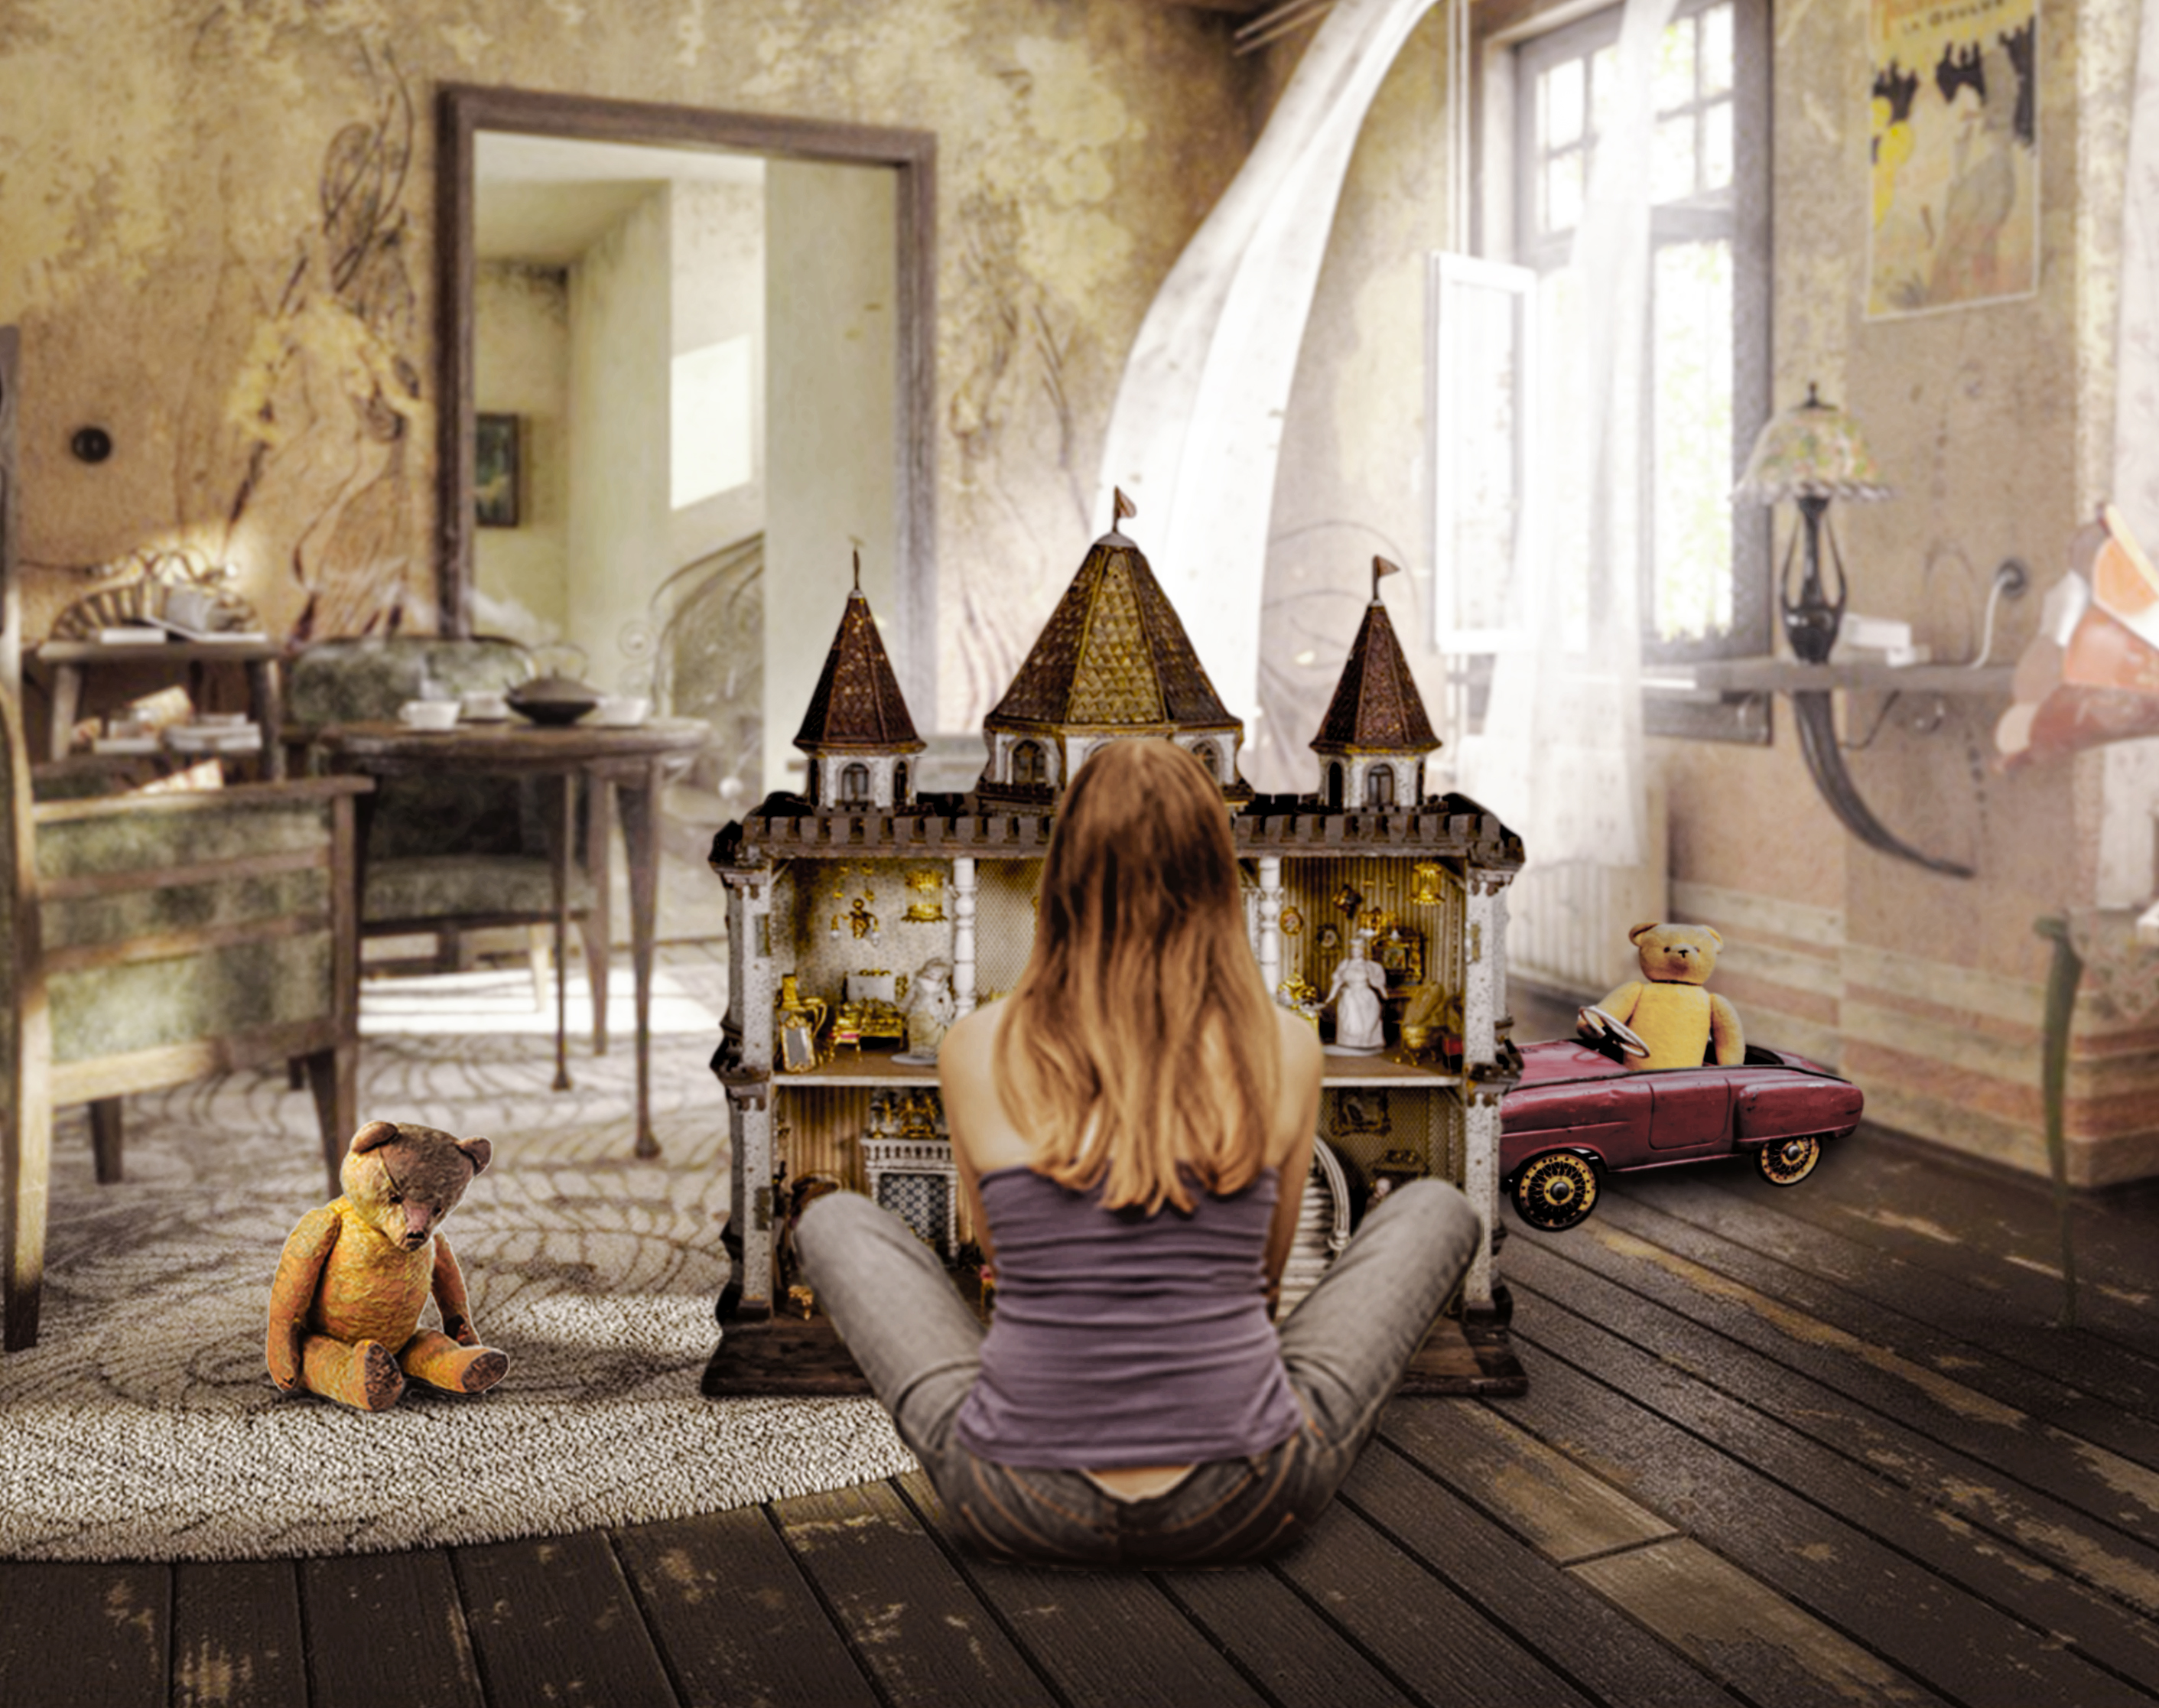 Georgie and the doll house